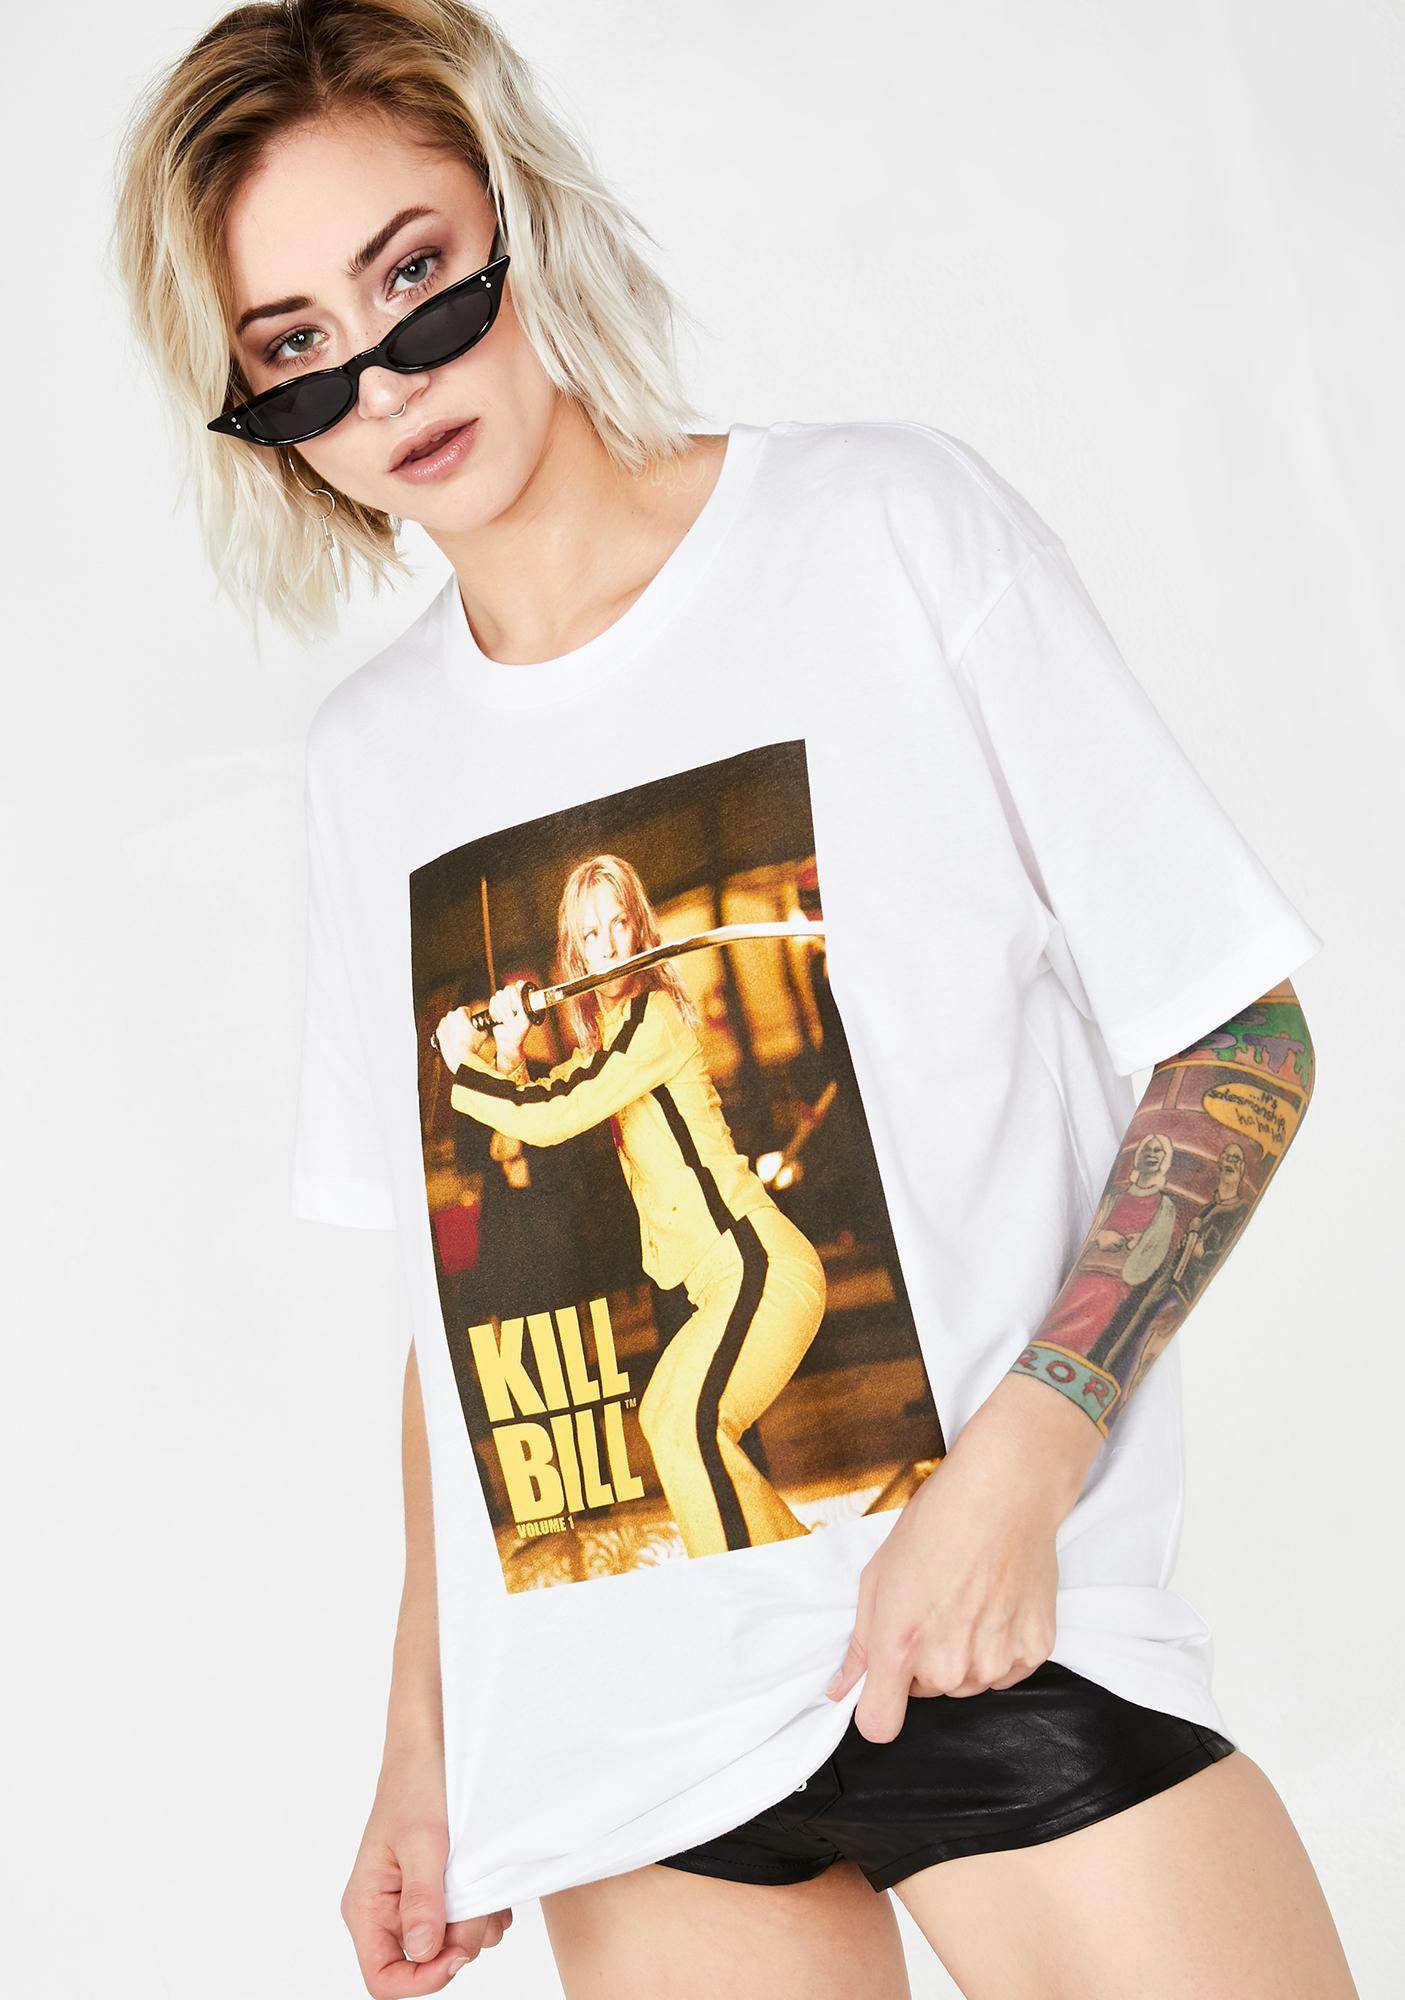 Vengeance Bride Graphic Tee